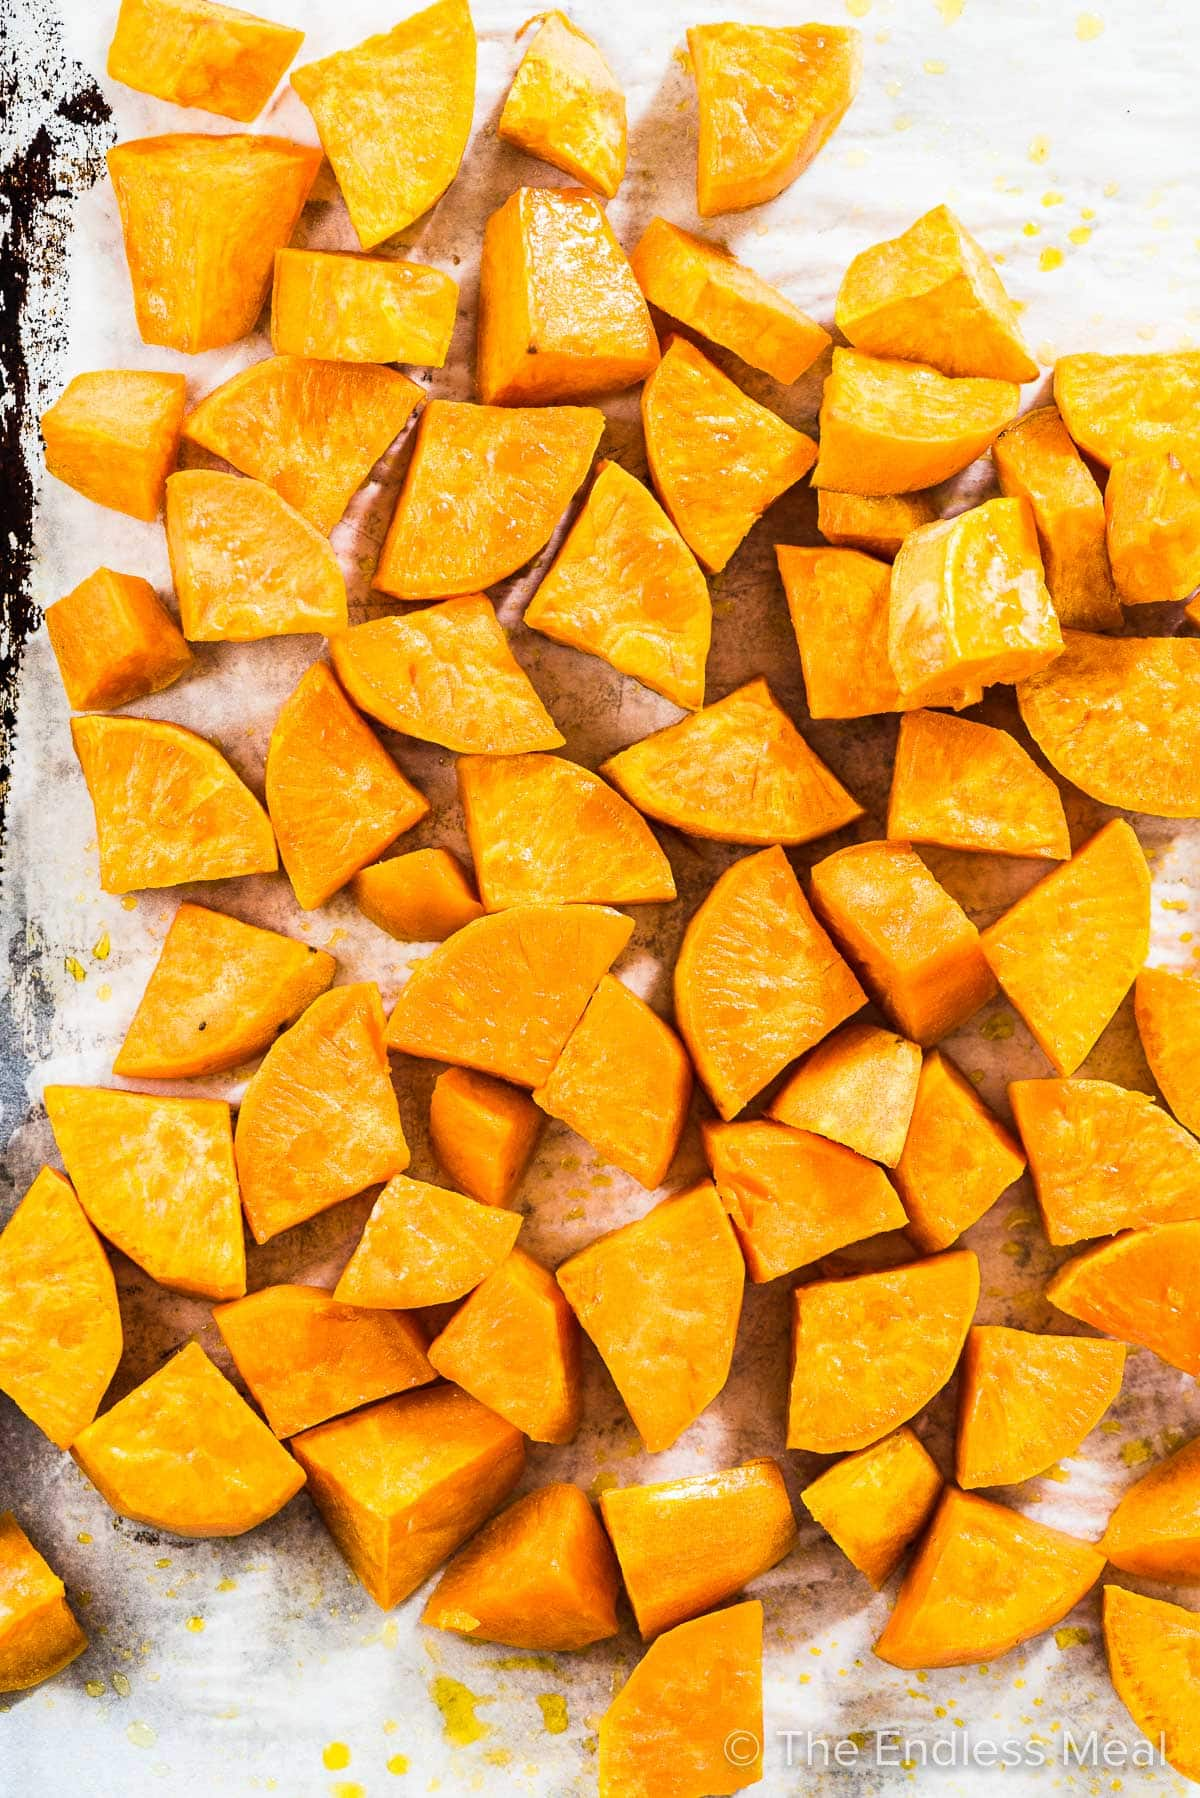 Roasted sweet potato cubes on a baking tray.